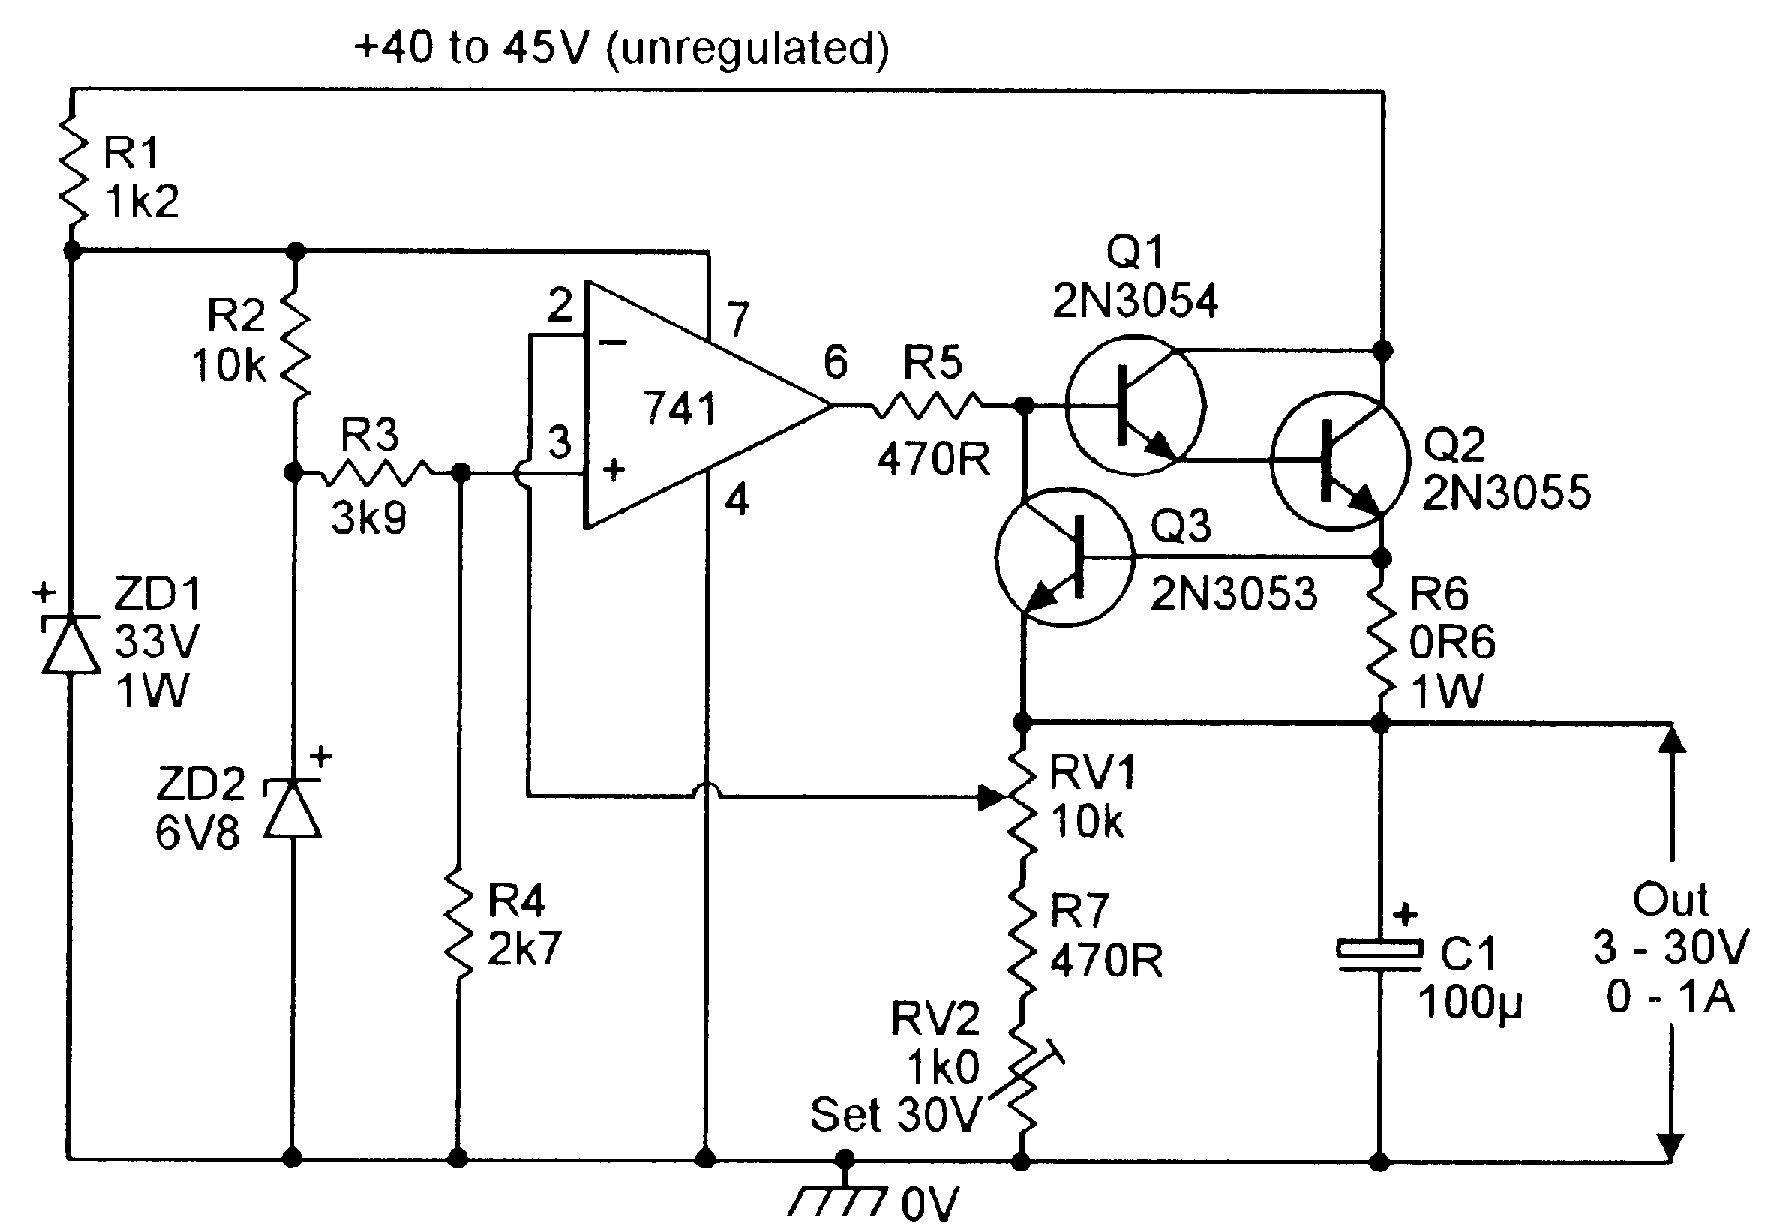 Fine Boiler Diagram Thick Tsb Search Regular Car Alarm Installation Diagram Wiring 1 2 3 Youthful Wire Guitars PinkBulldog Secure 3V To 30V Stabilized PSU With Overload Protection. | Electronic ..